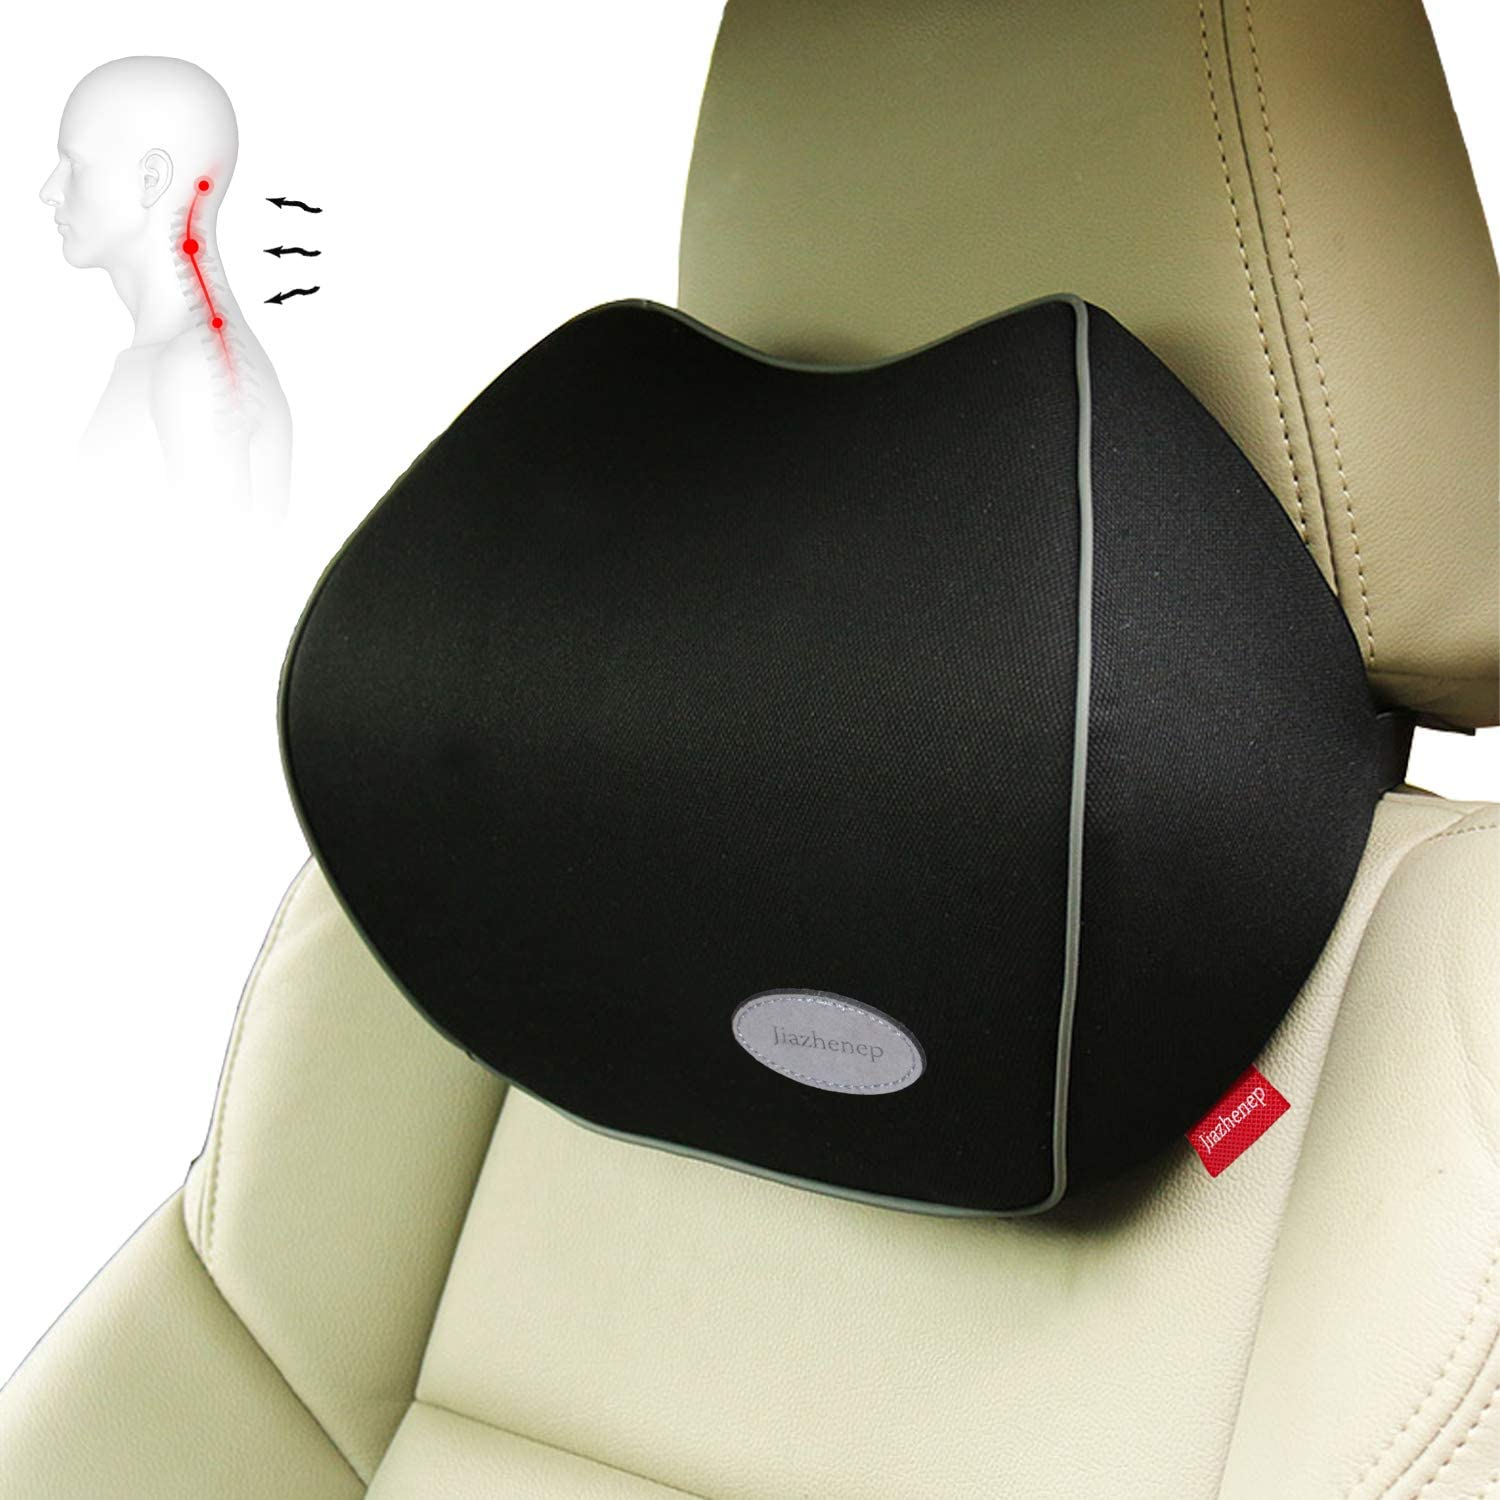 Headrest Pillow 100/% Pure Memory Foam and Washable Cover. Jiazhenep Car Neck Support Pillow for Neck Pain Relief When Driving Black